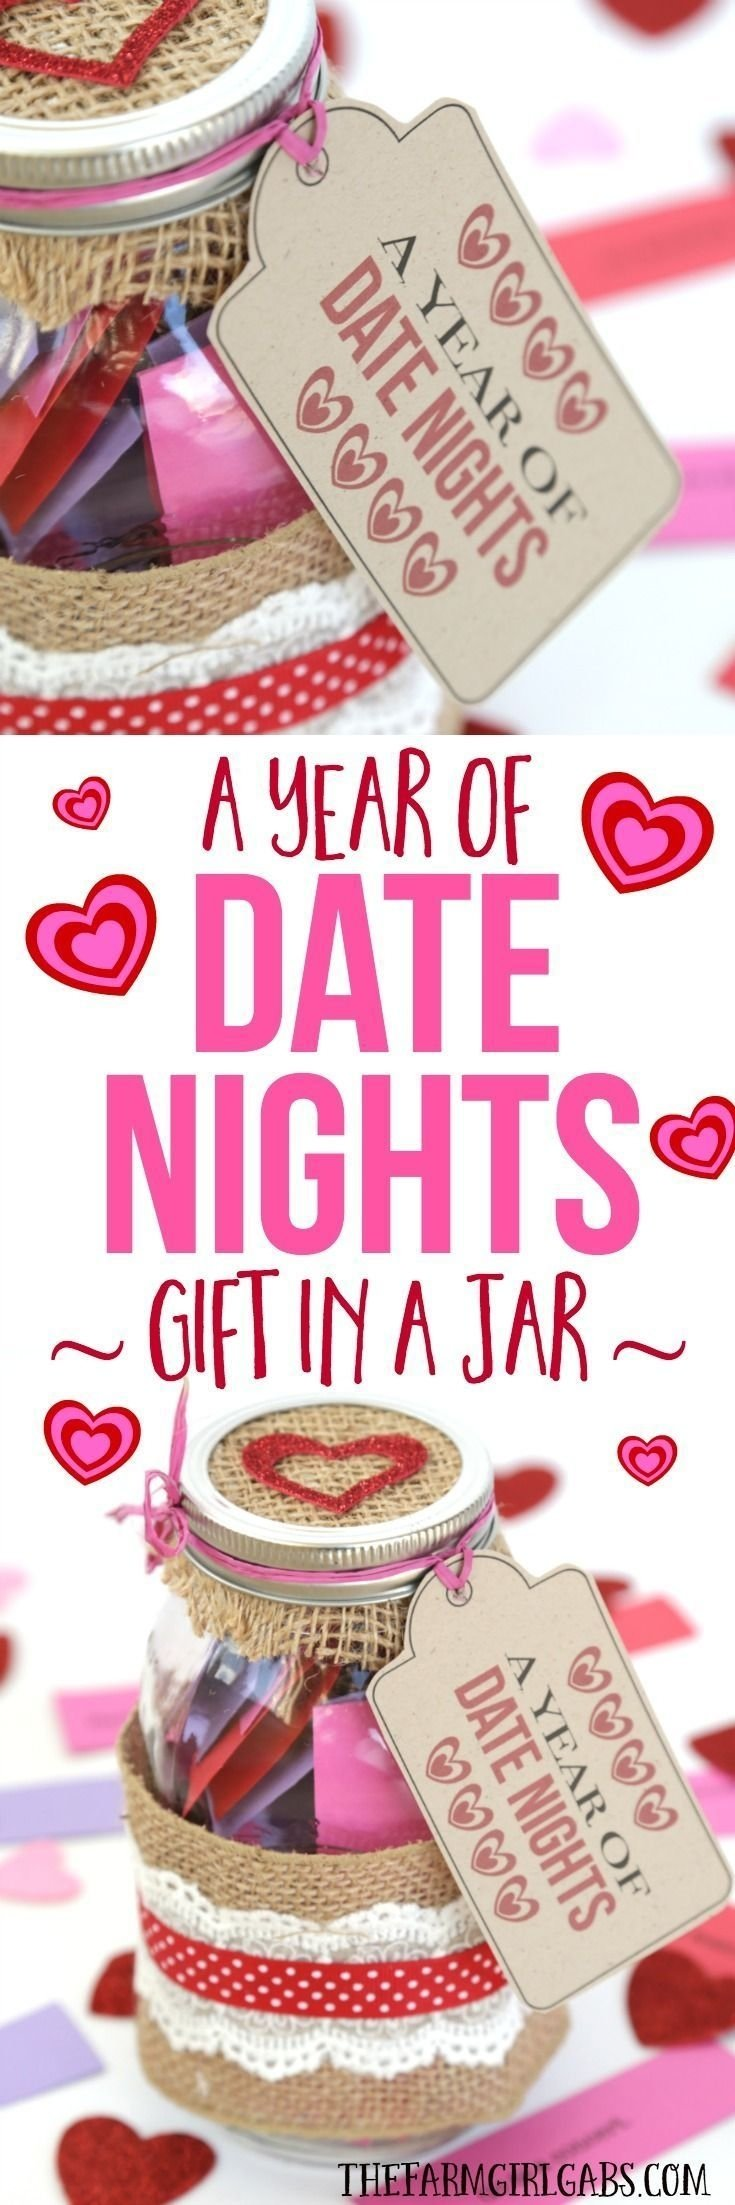 10 Beautiful Cute Valentines Day Date Ideas 152 best date ideas images on pinterest my love romantic ideas 11 2020